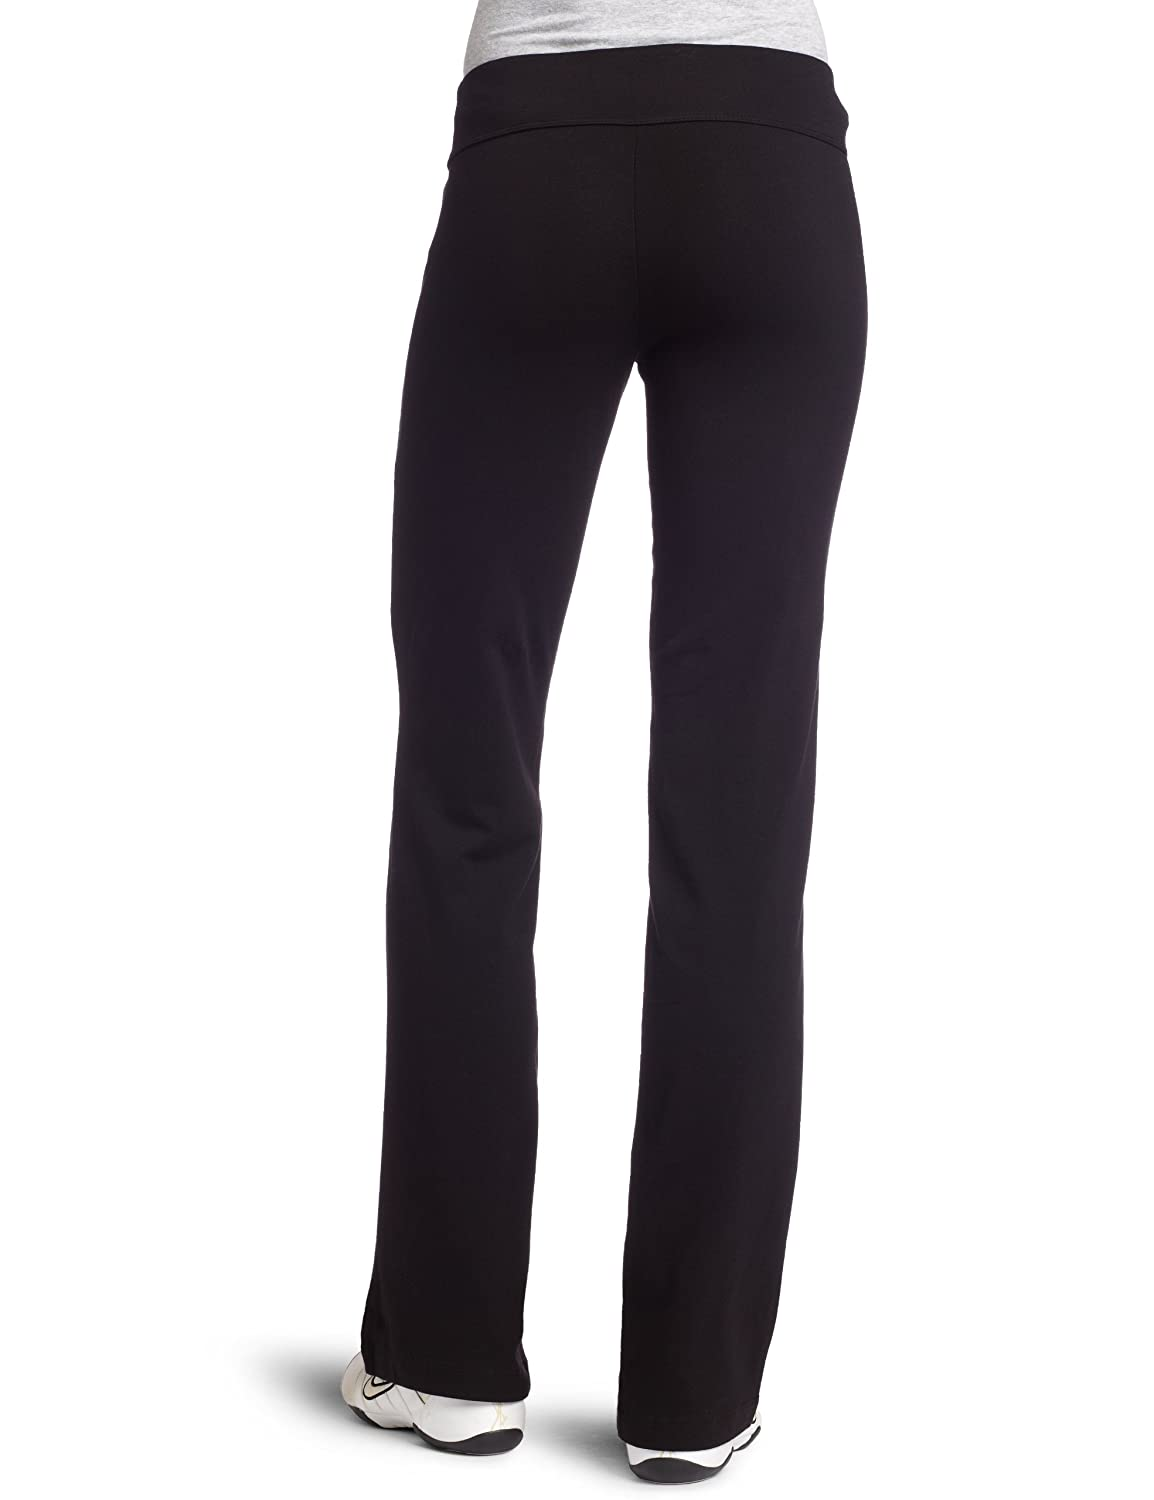 1e7b257cfc Everlast Women's Bootleg Pant at Amazon Women's Clothing store: Athletic  Pants